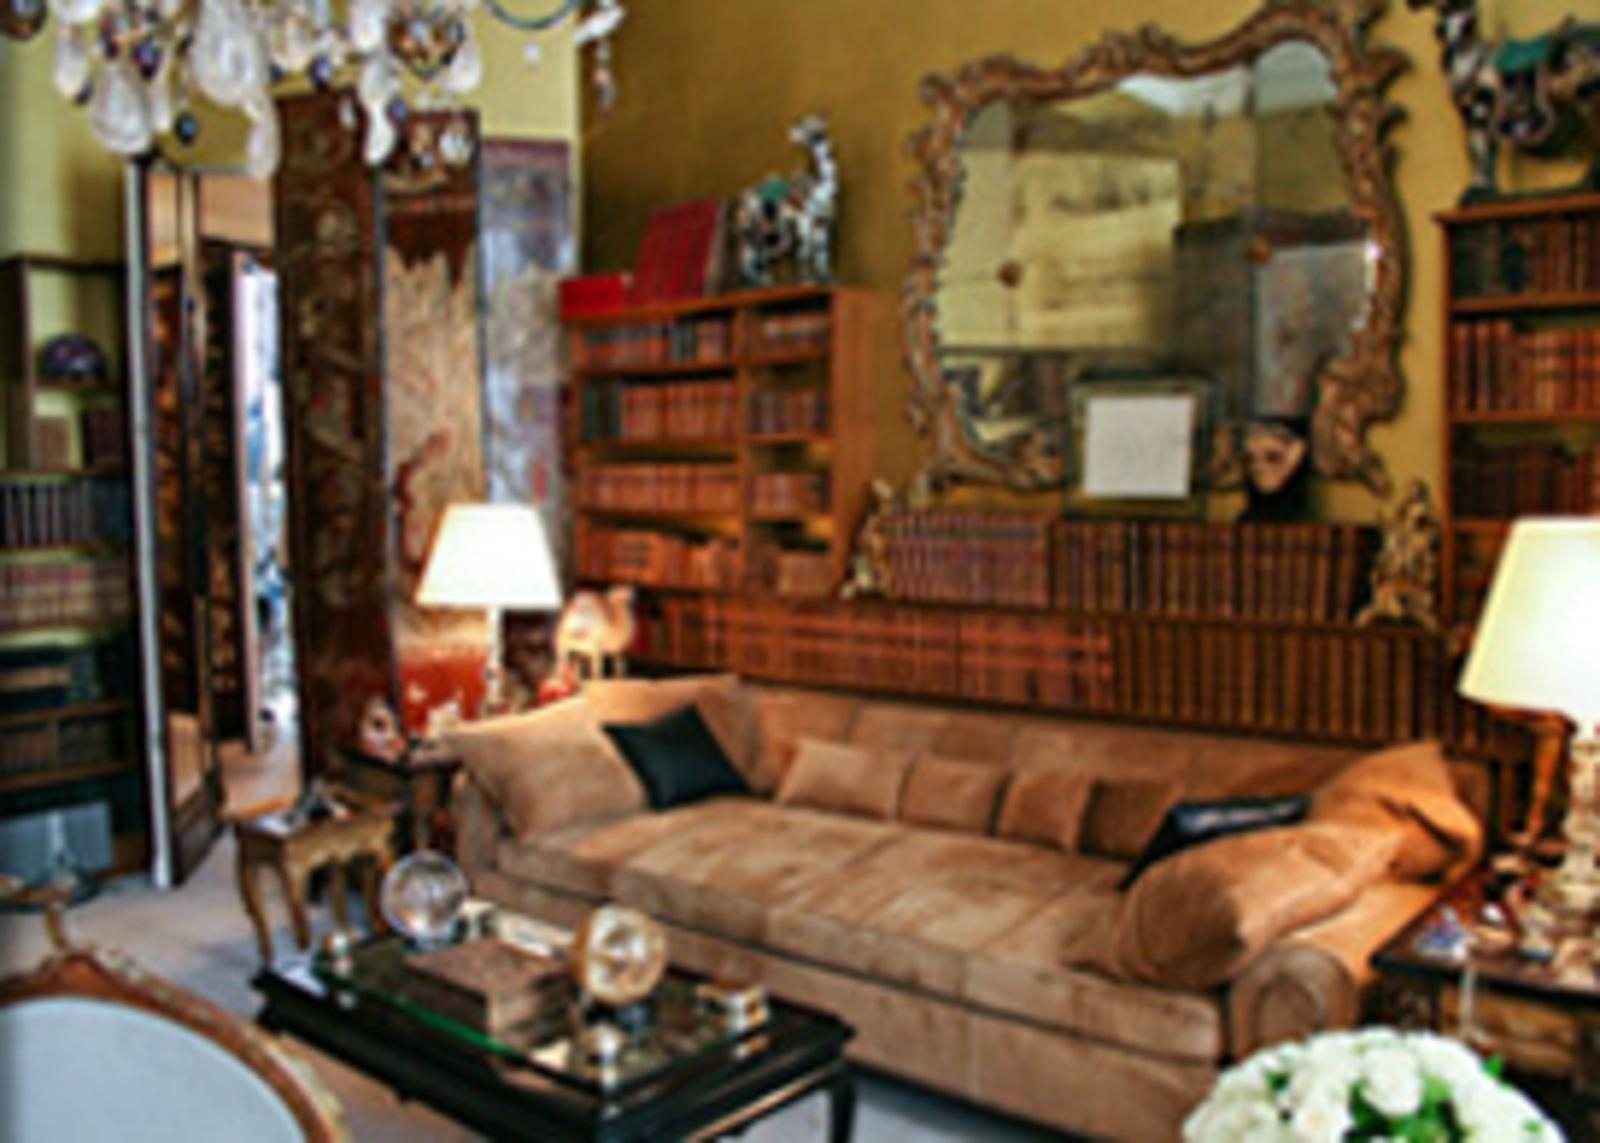 Coco Chanel's Apartment – Cool Hunting Regarding Coco Chanel Sofas (View 6 of 20)